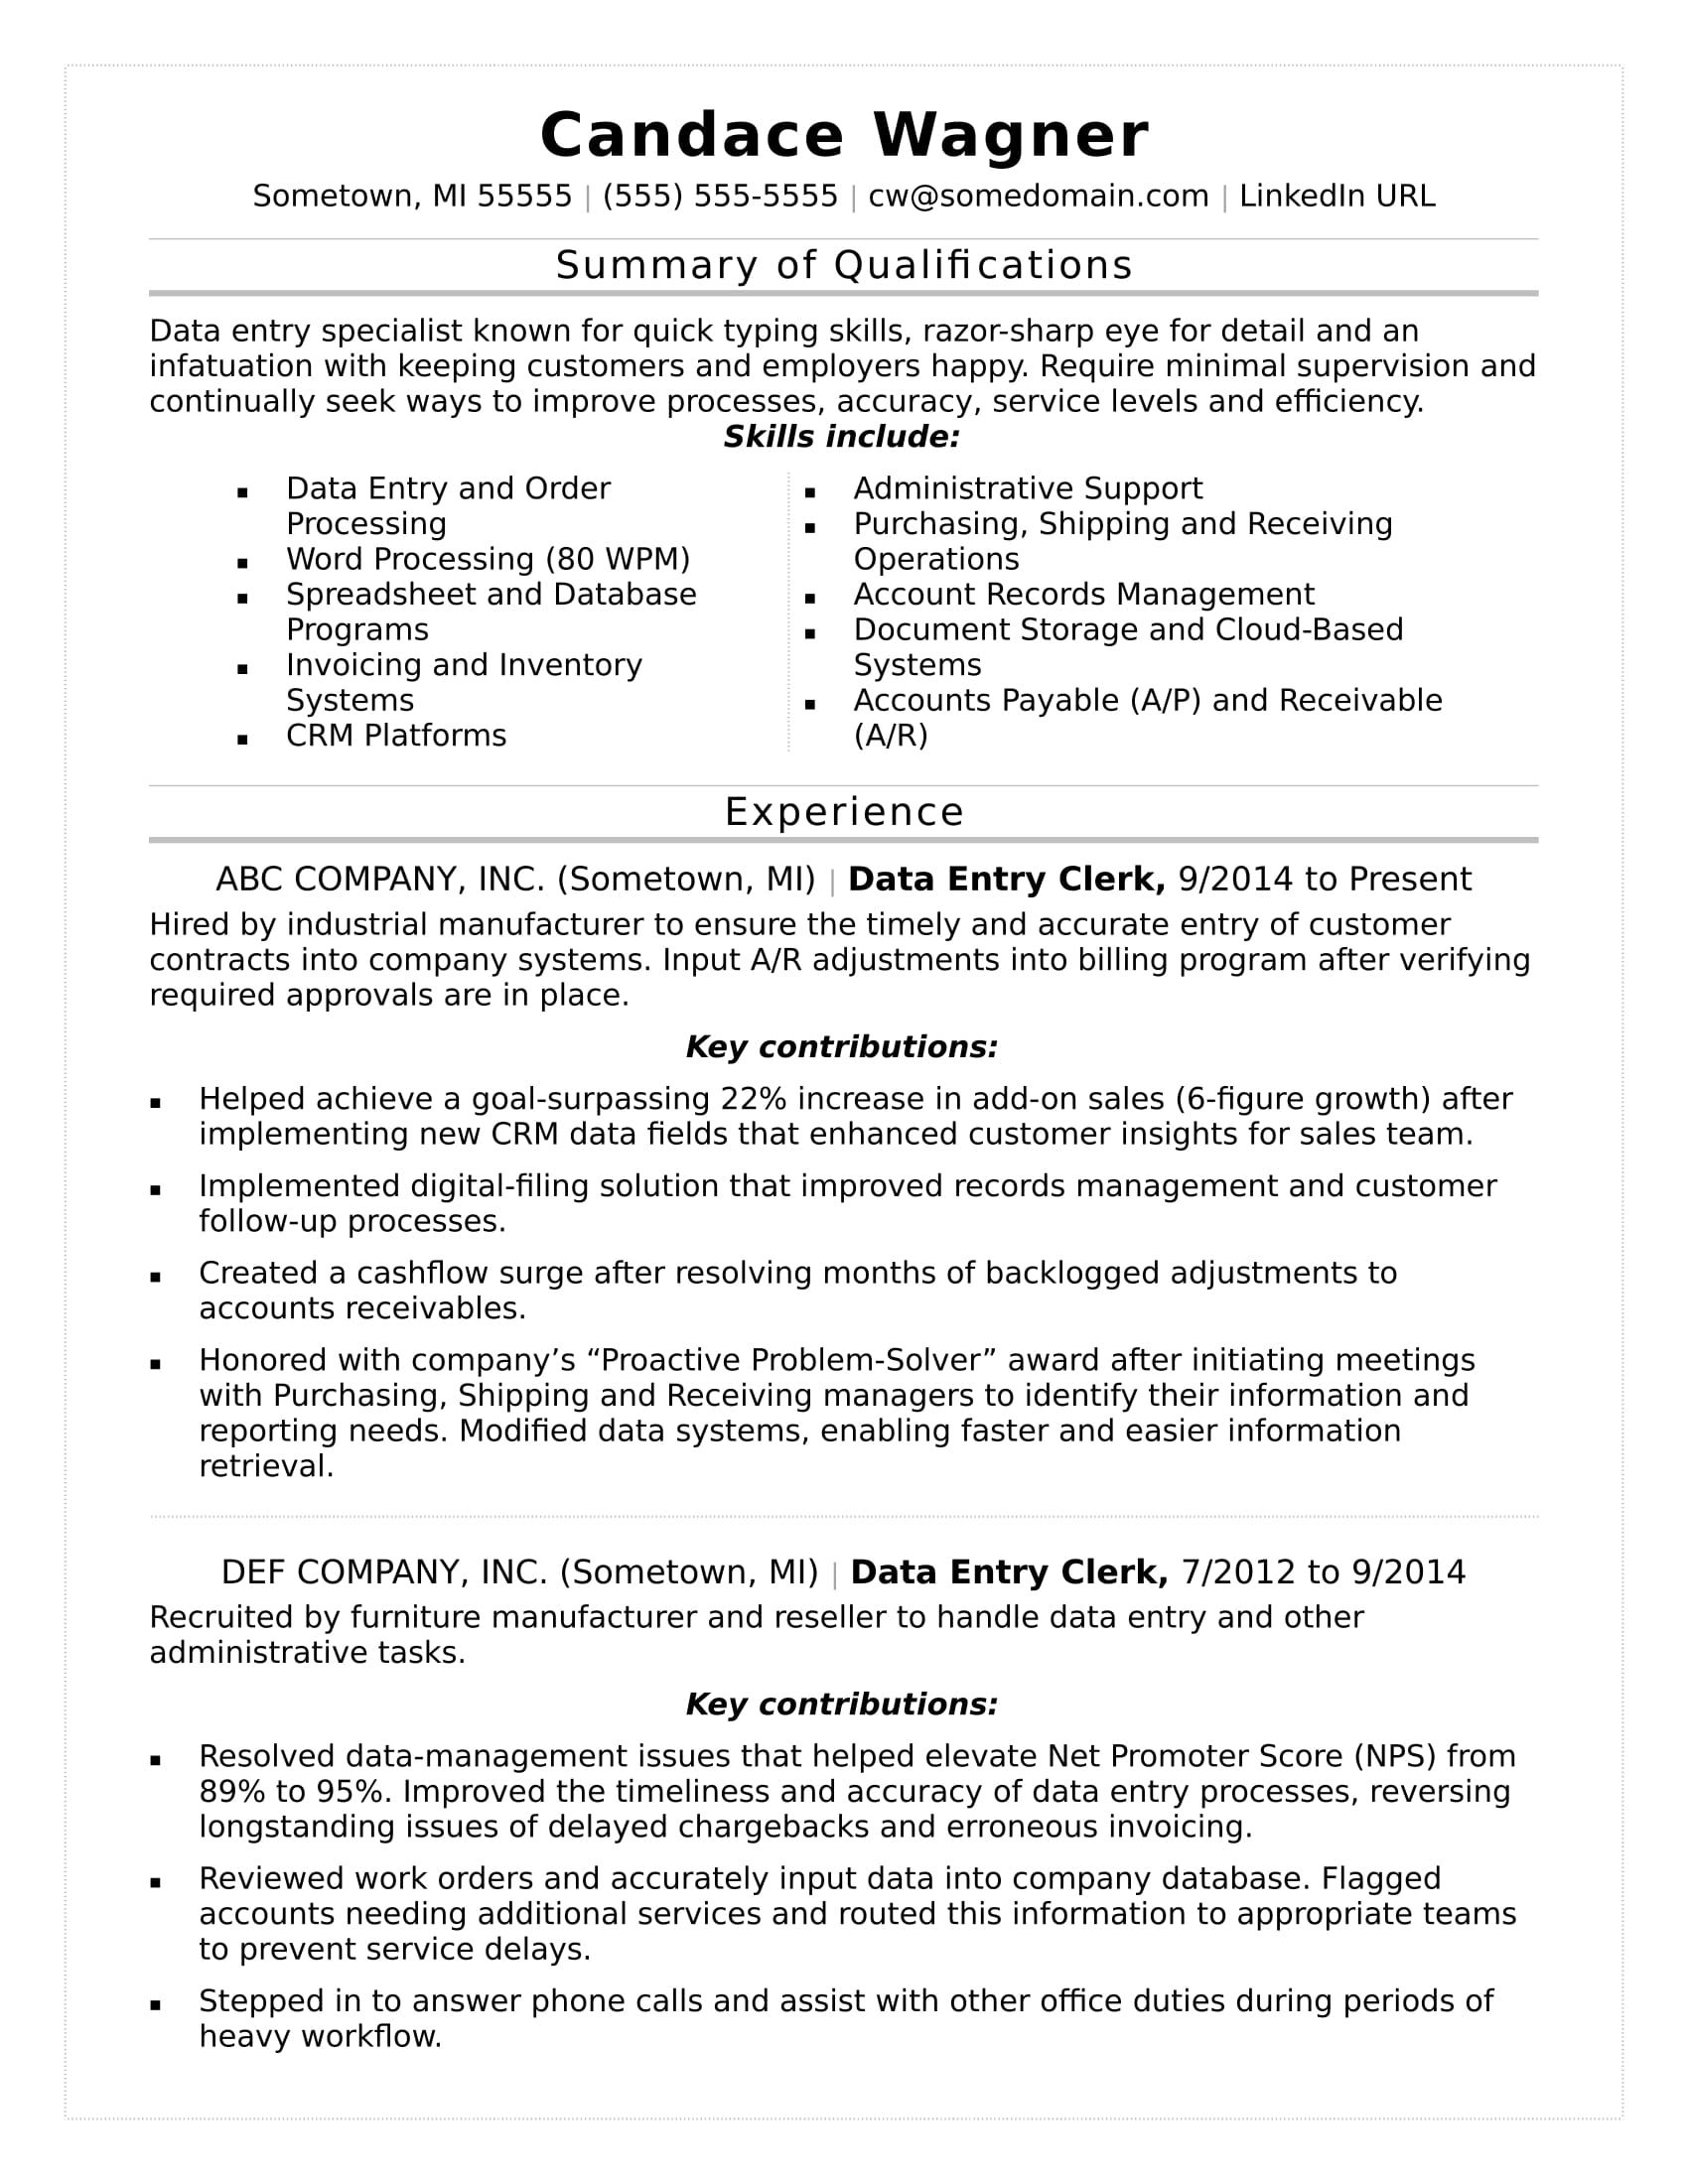 Entry Level System Administrator Resume New Data Entry Clerk Resume Examples Free To Try Today Data Entry Clerk Resume Examples Data Entry